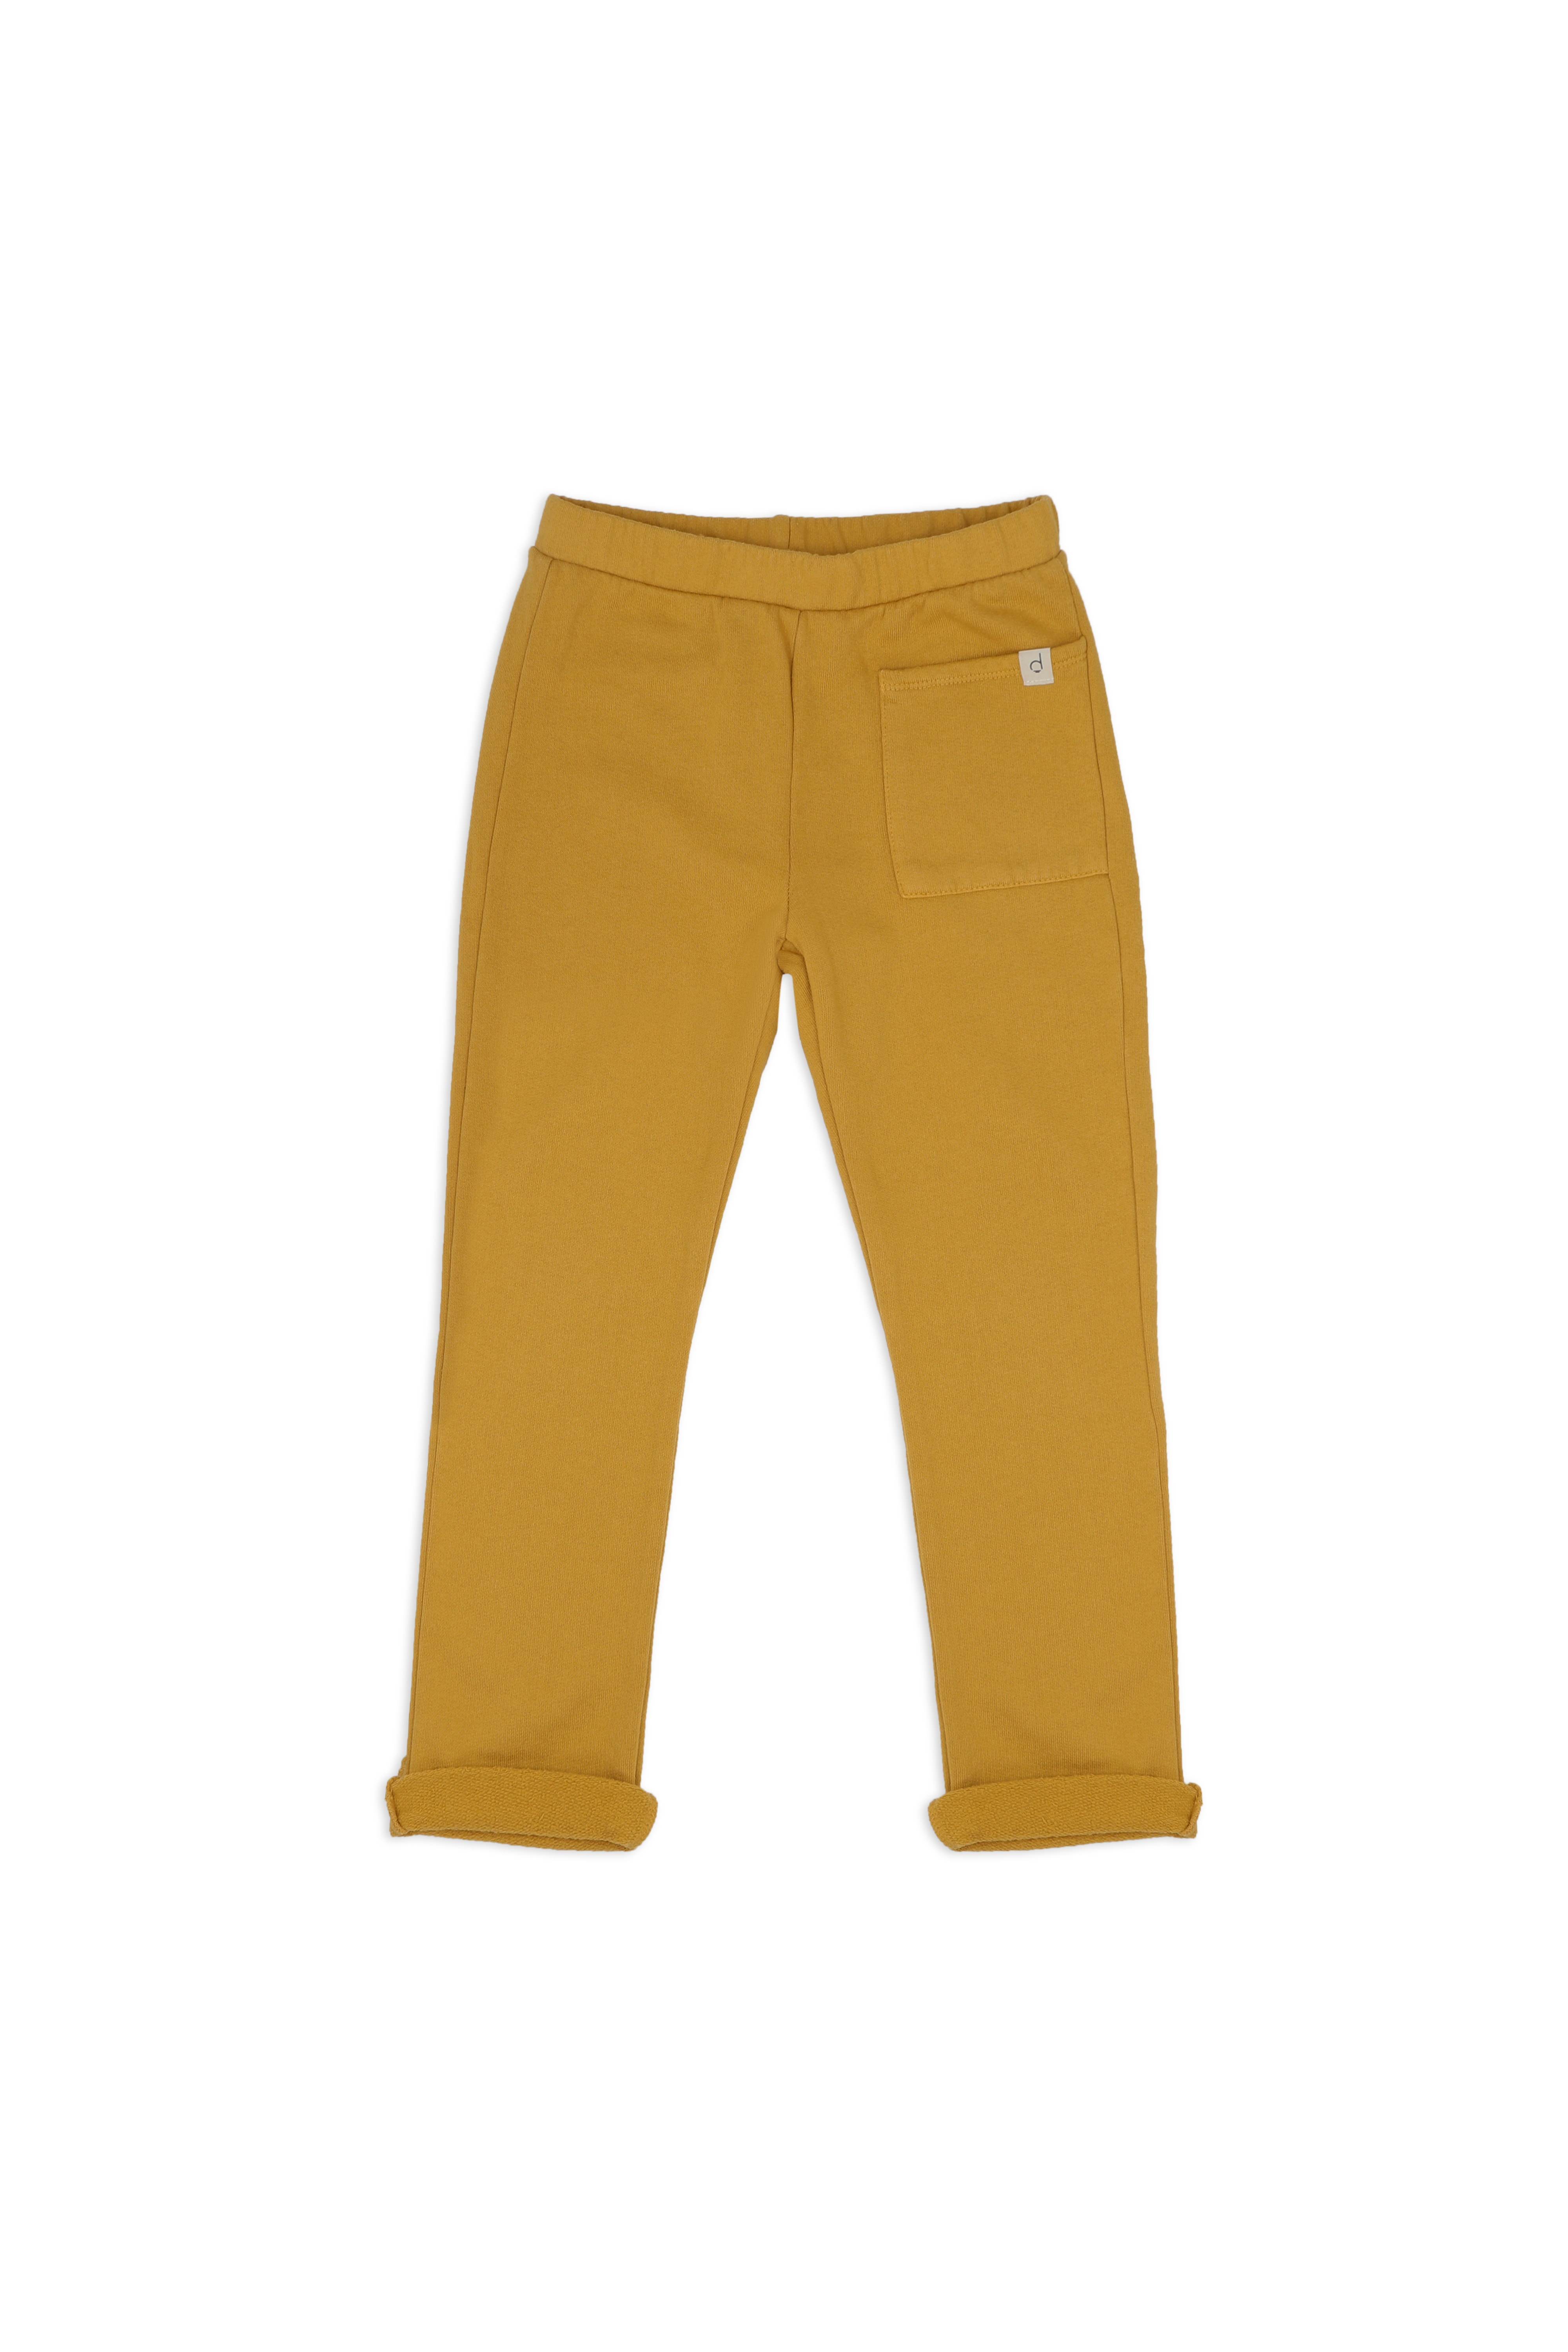 Kids-pants-mellow-yellow